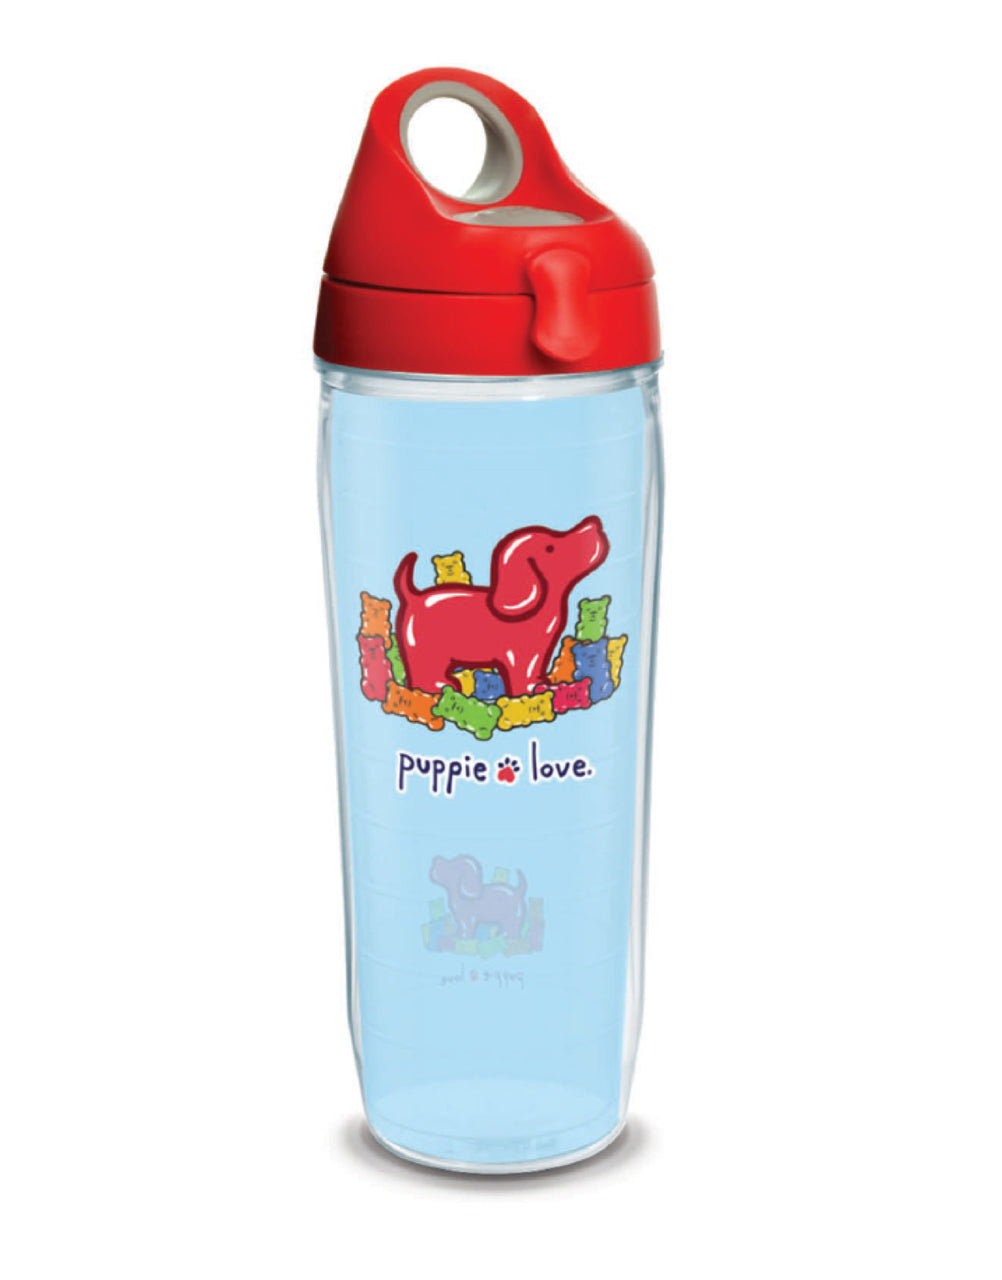 GUMMI PUP 24oz WATER BOTTLE - Puppie Love